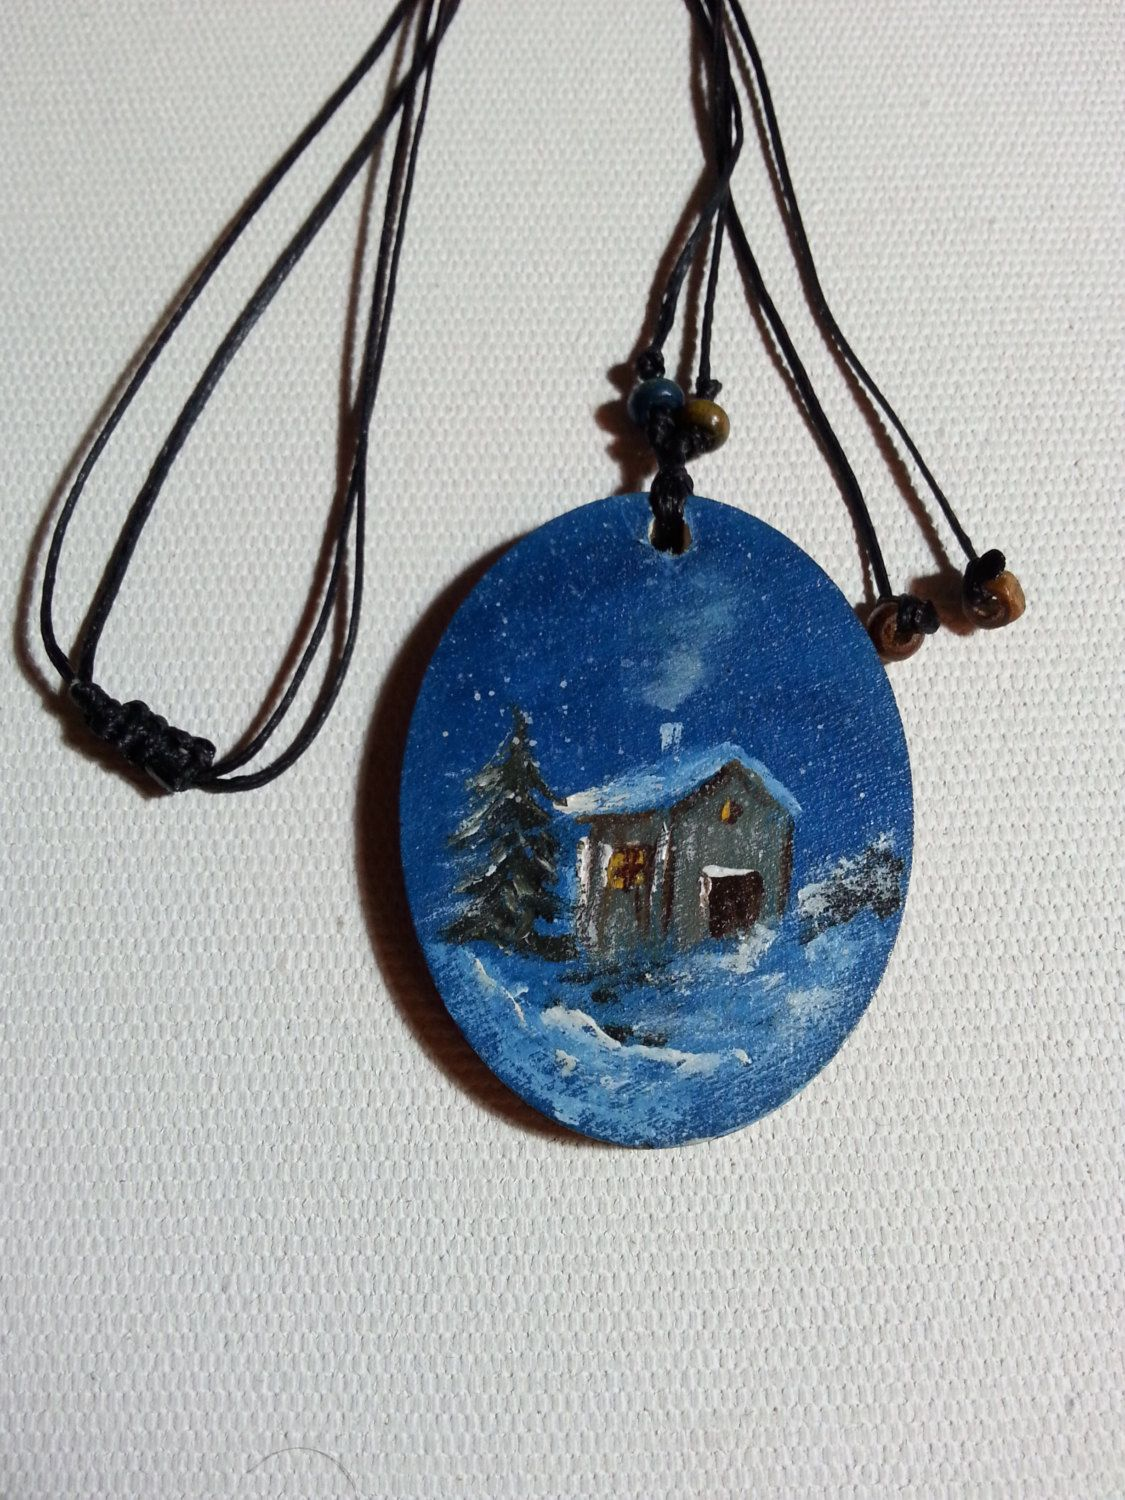 Hand Painted Necklace Handmade Jewelry Wooden Jewelry Handmade Painting The Snow View Mountain L Hand Painted Jewelry Hand Painted Necklace Wooden Jewelry